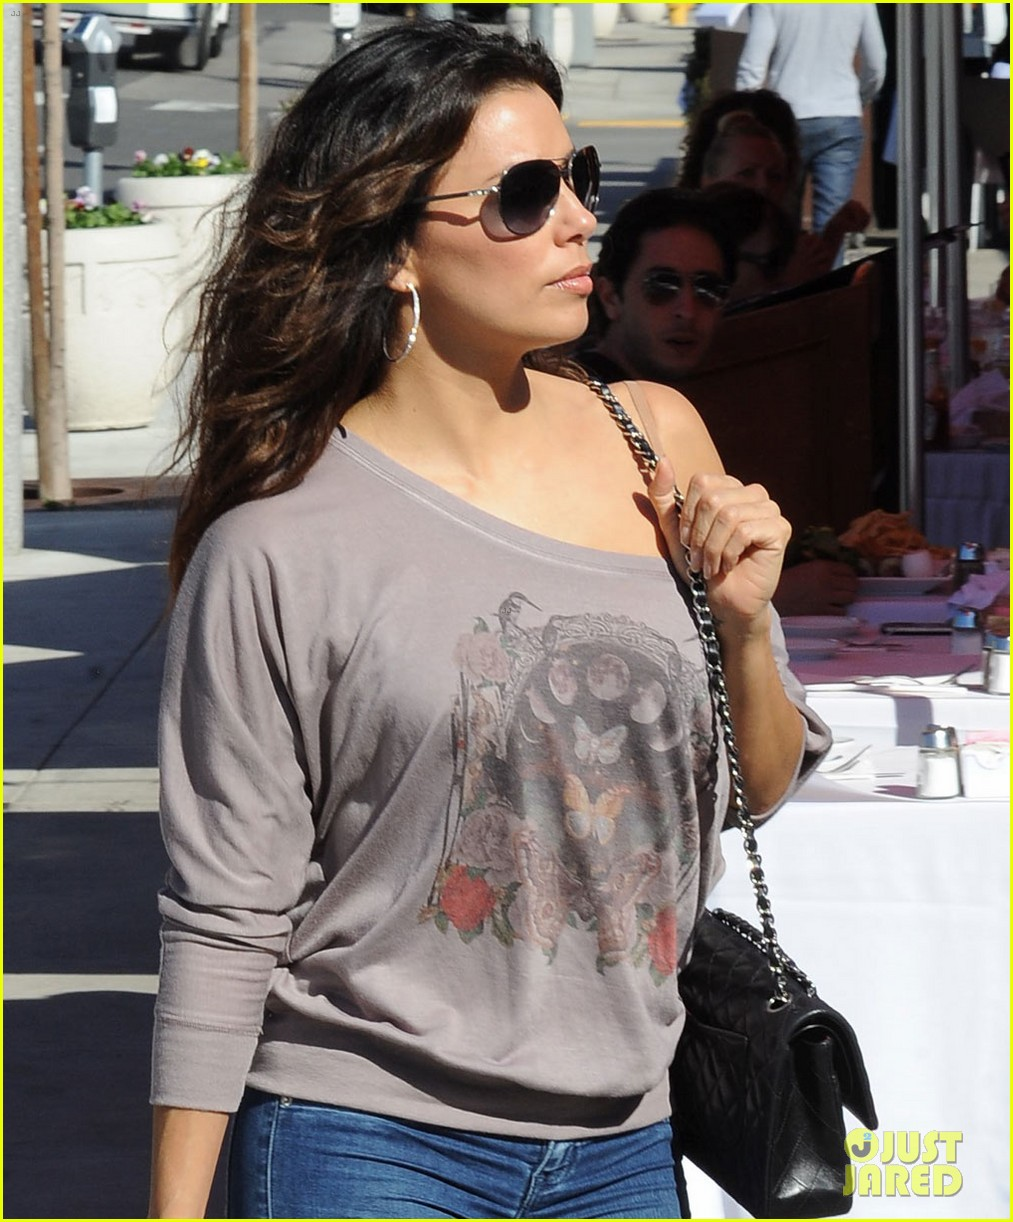 eva longoria smiling sunset shopper 022748401